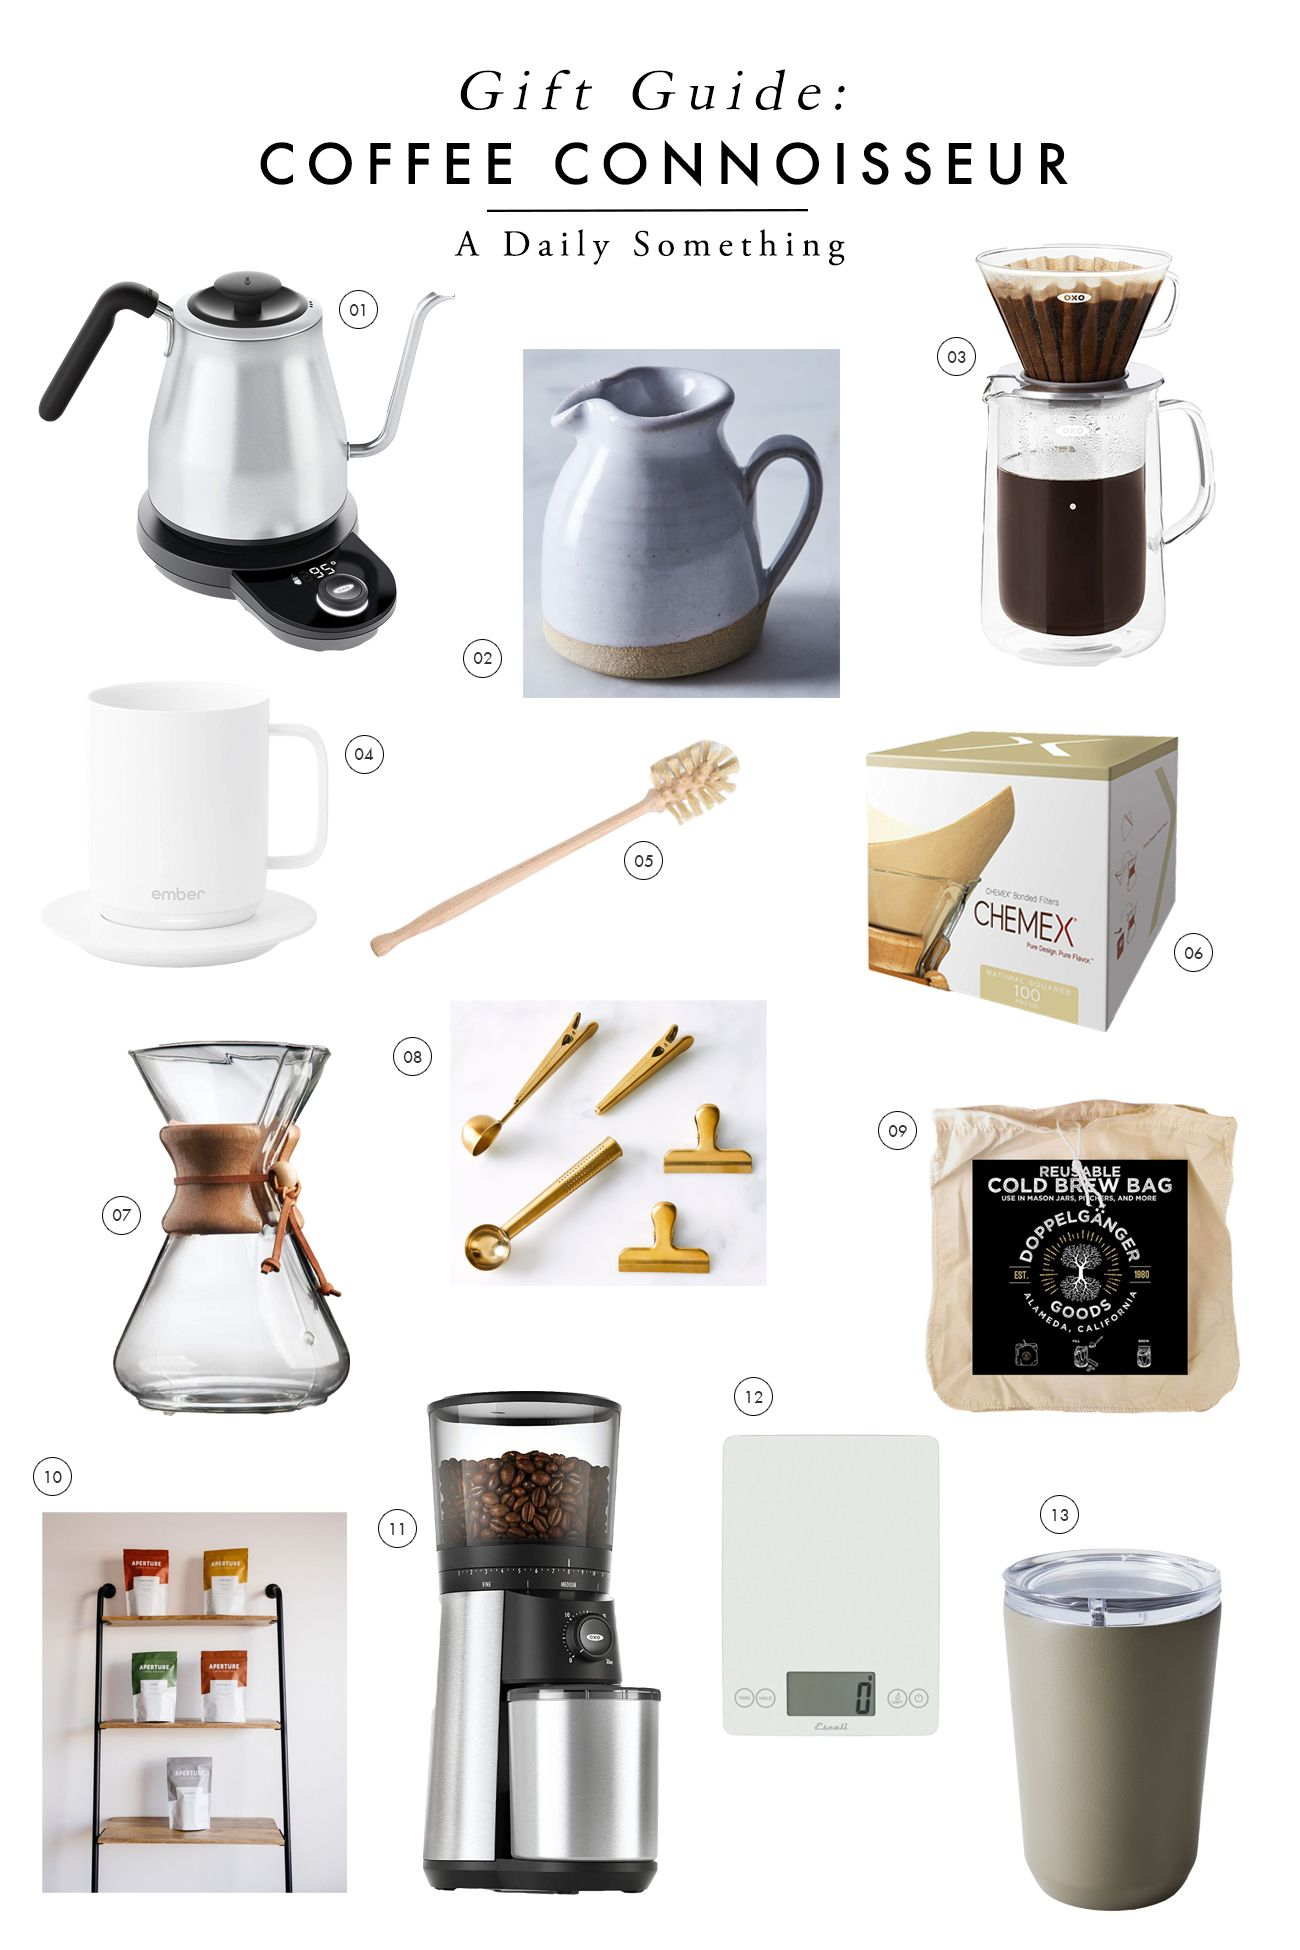 Gift guide the coffee connoisseur a daily something in